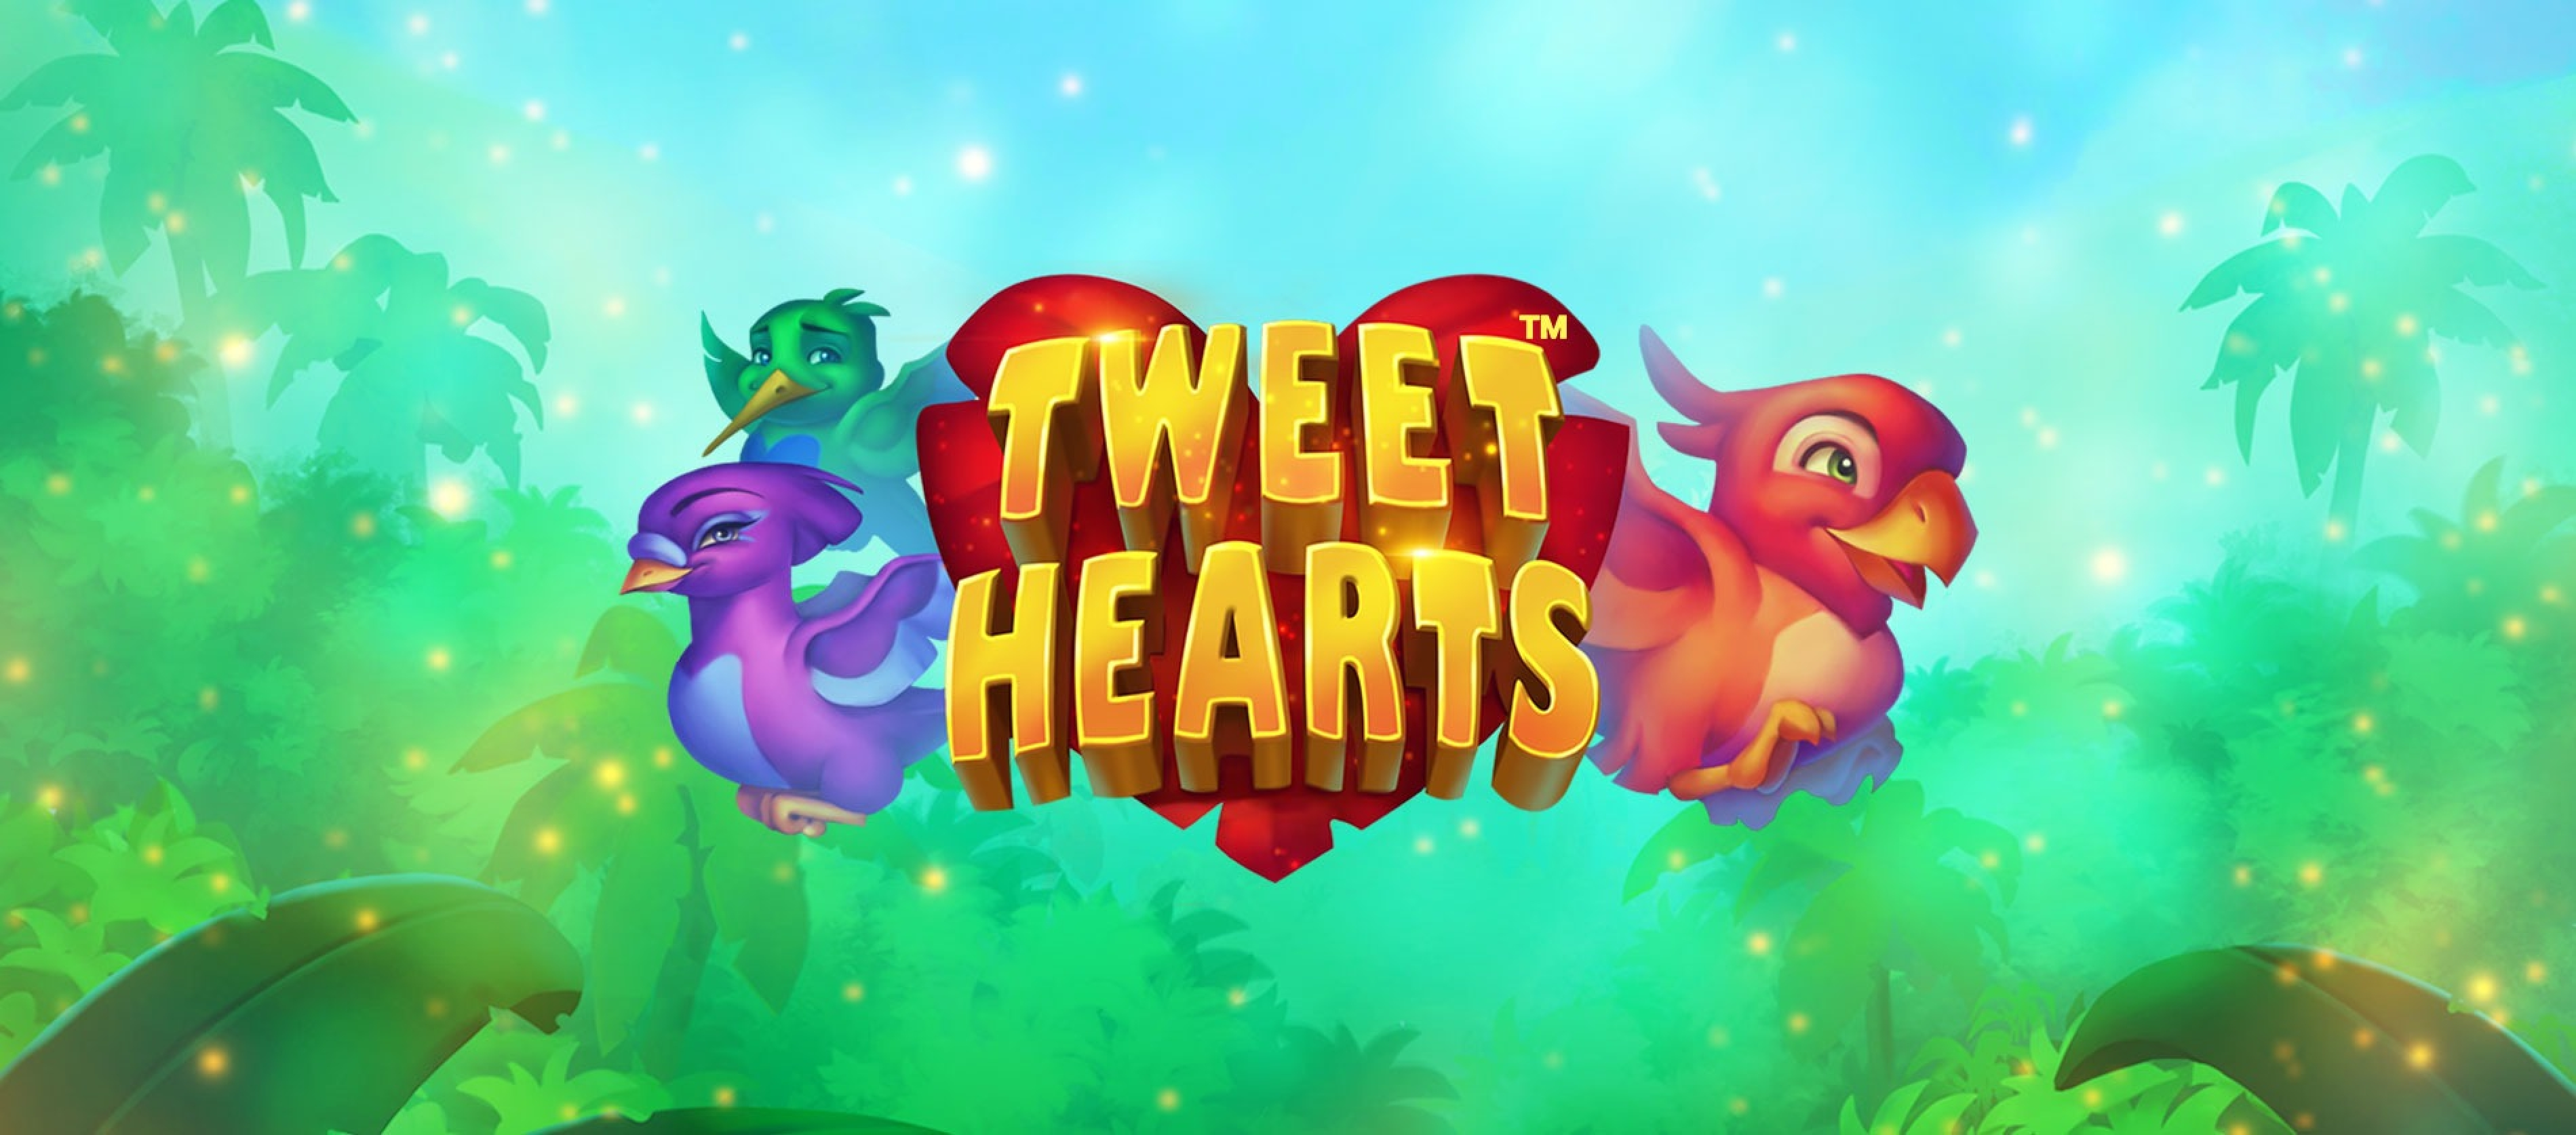 Win Money in Tweethearts Free Slot Game by Just For The Win